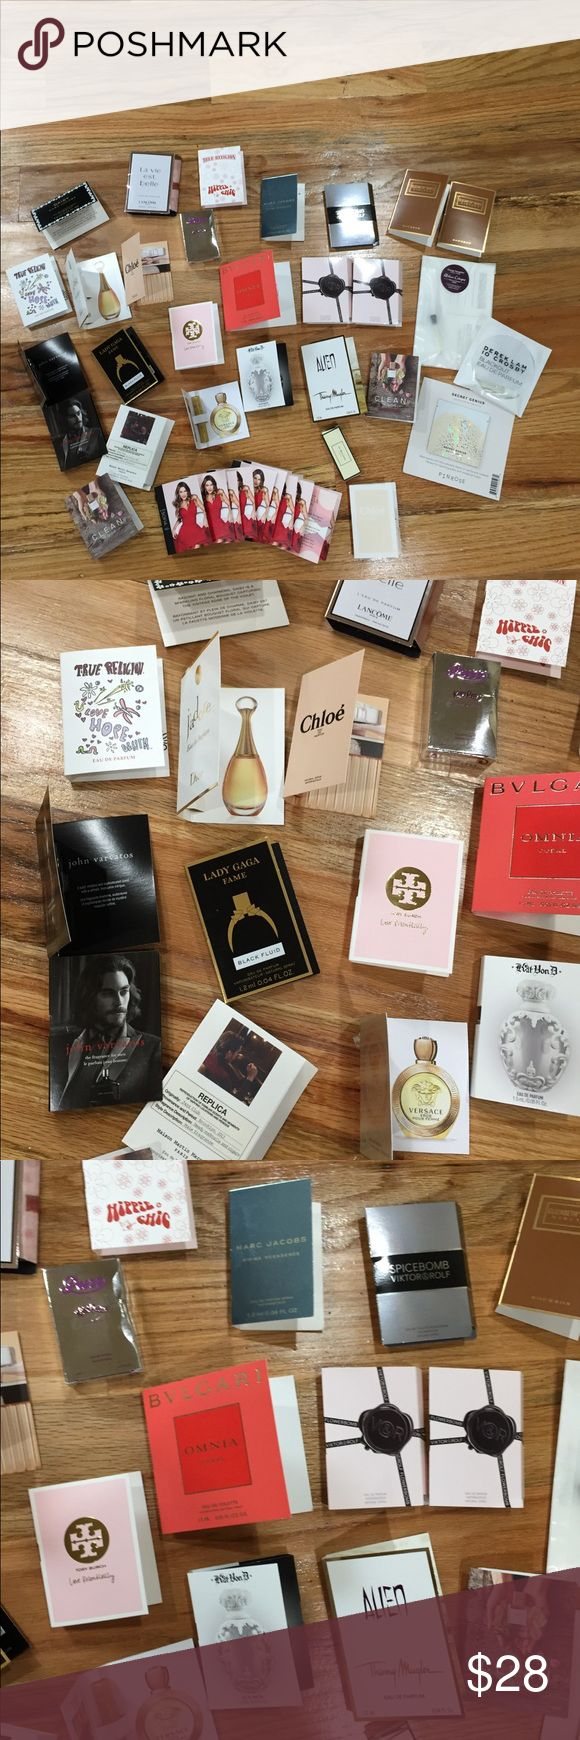 Bundle of 38 New Perfume Samples Bundle of 38 New Perfume Samples. Includes everything you see in pics. Tory burch, Versace, Spicebomb, Marc Jacobs, Alien, Elizabeth and James, Chloe, more Makeup